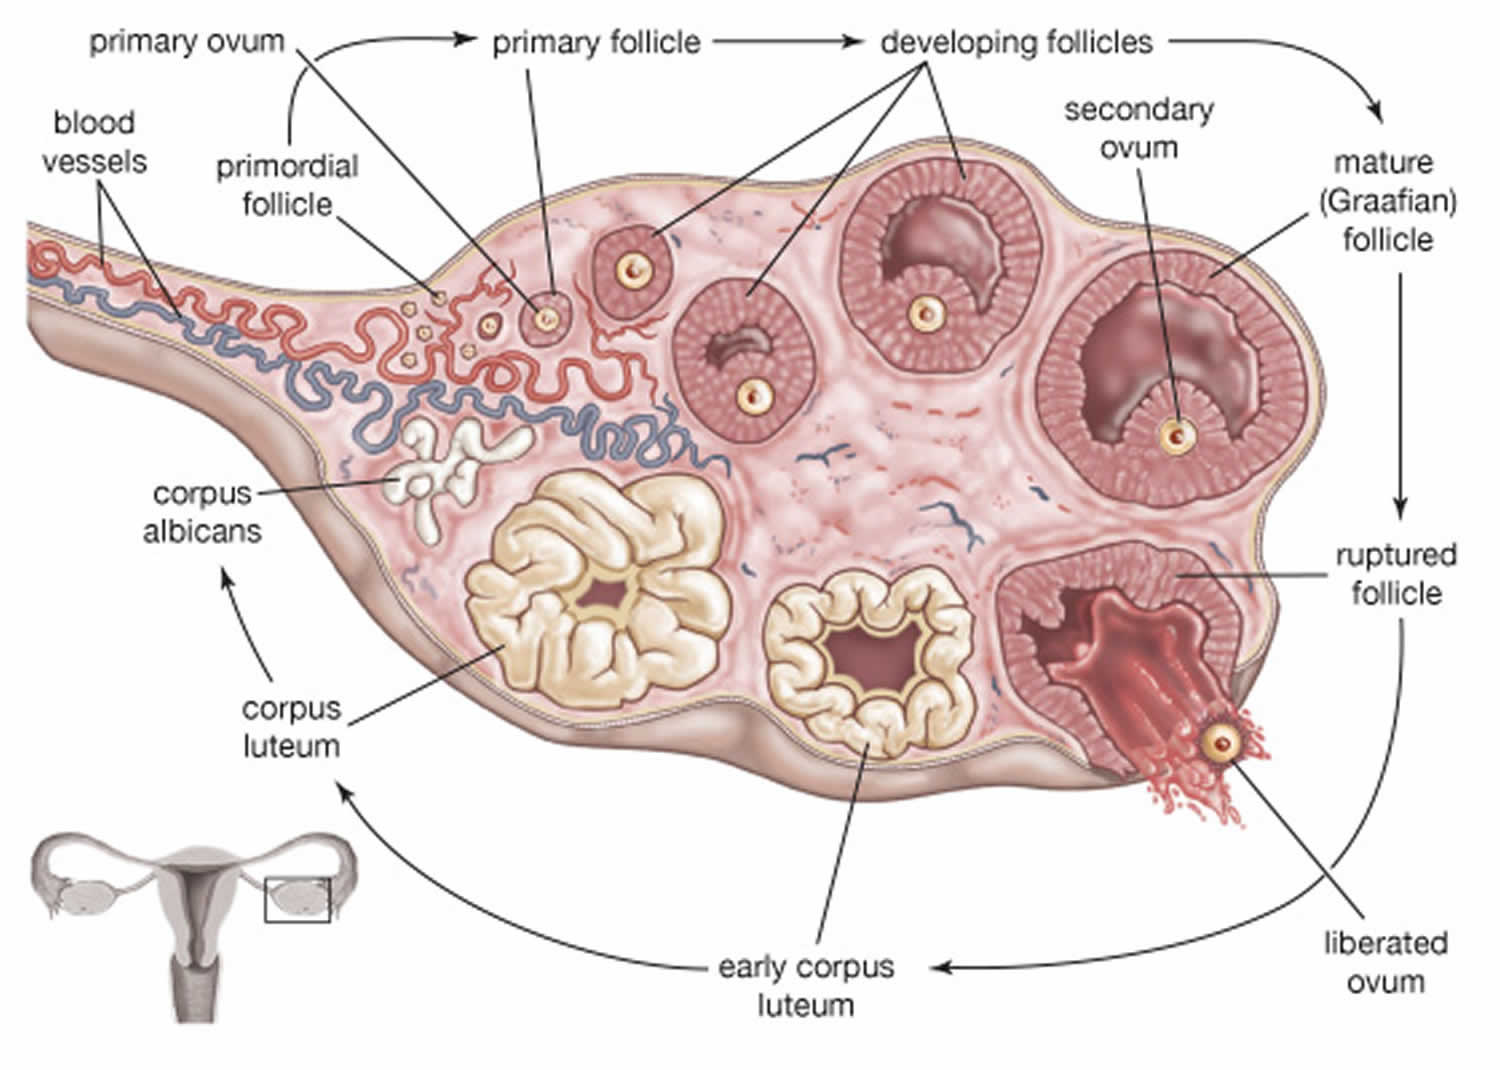 Ovarian Follicle Maturation